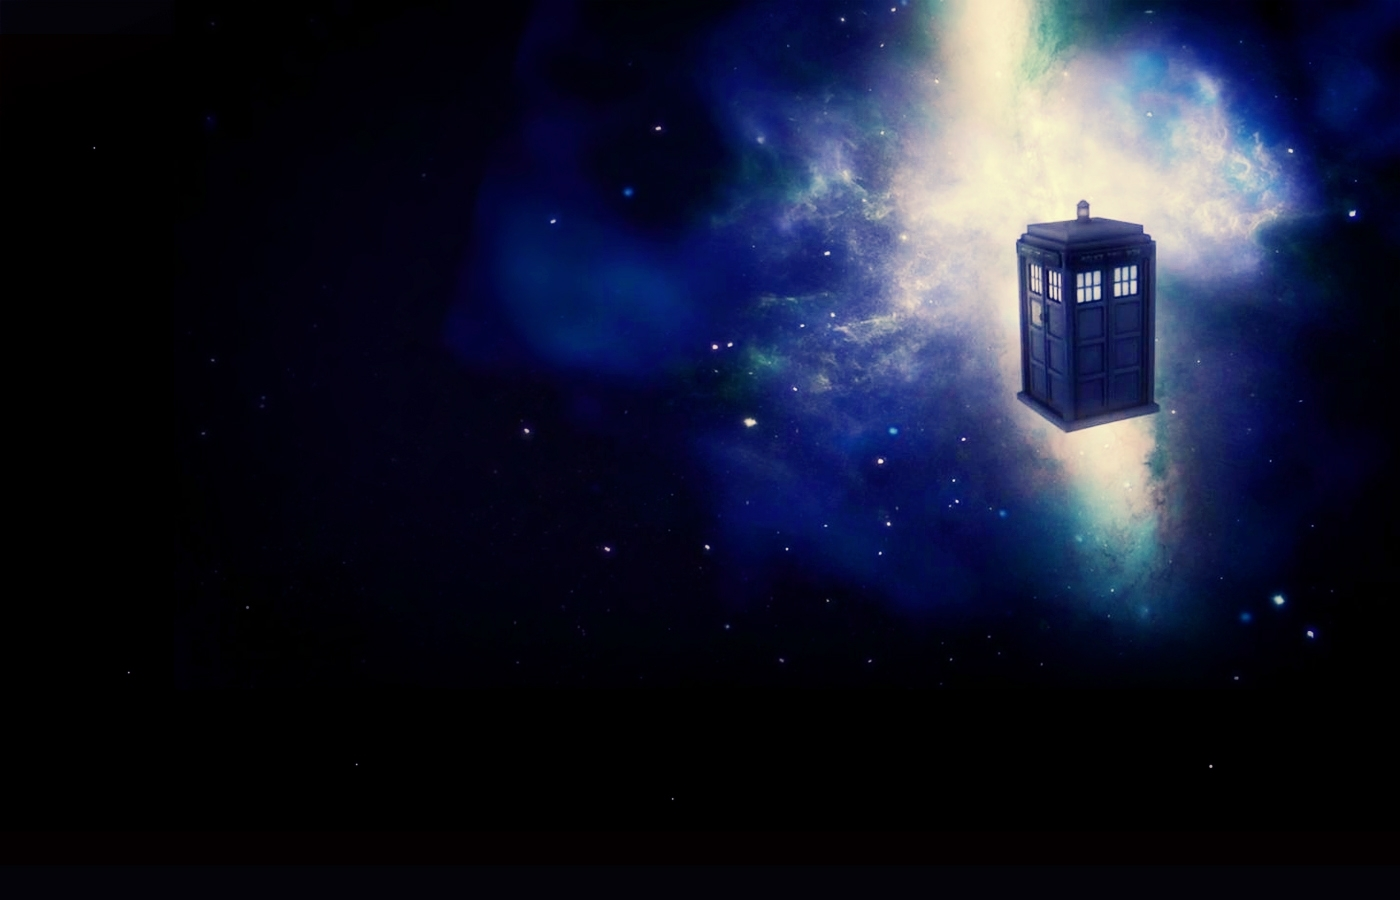 dr.who wallpaper for tablets | tardis doctor who abstract hd